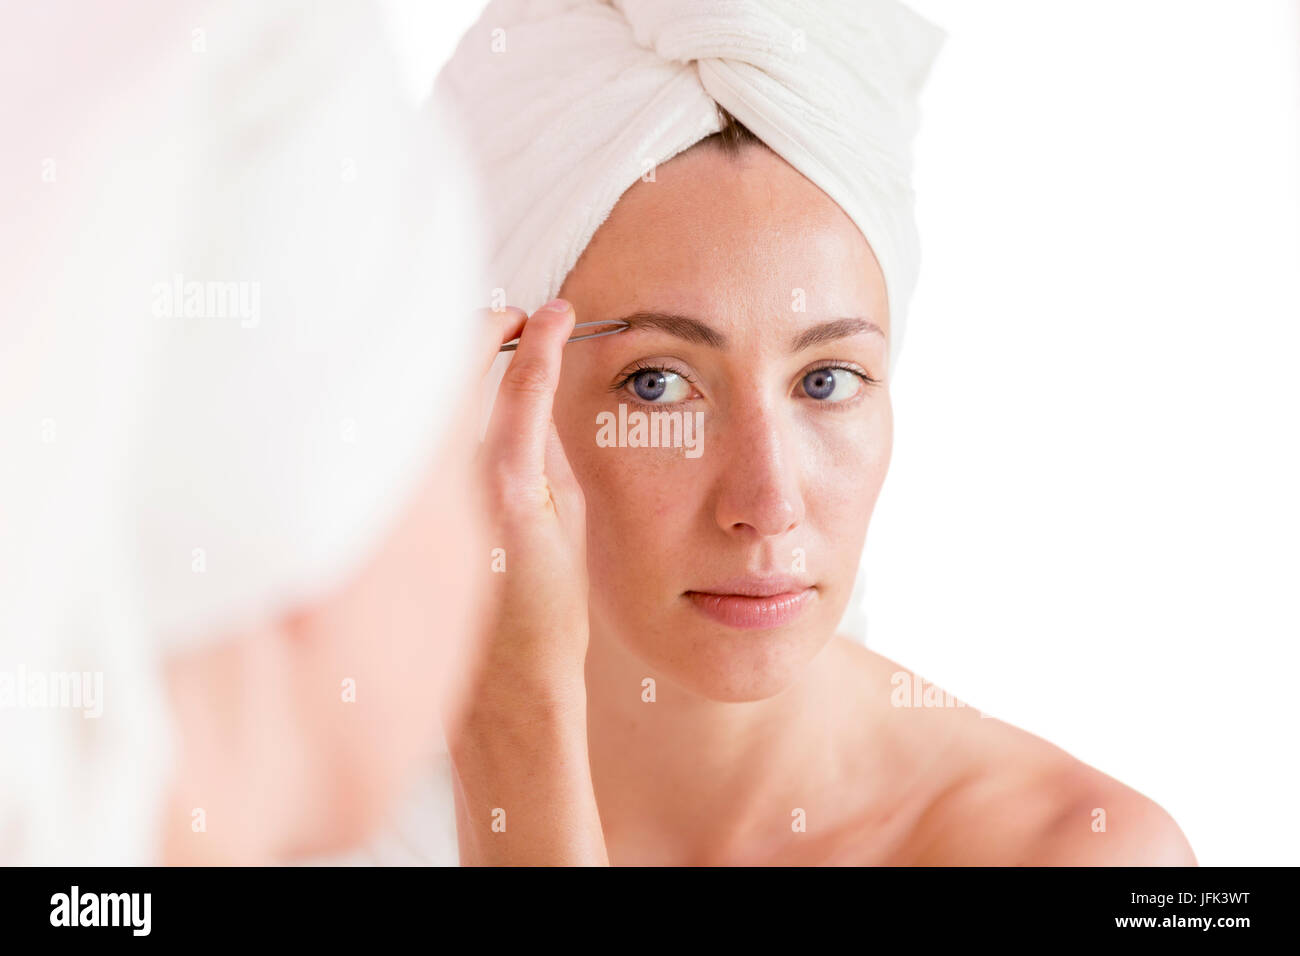 Woman Shaping Of Her Eyebrows With Tweezers Looking In Mirror Stock